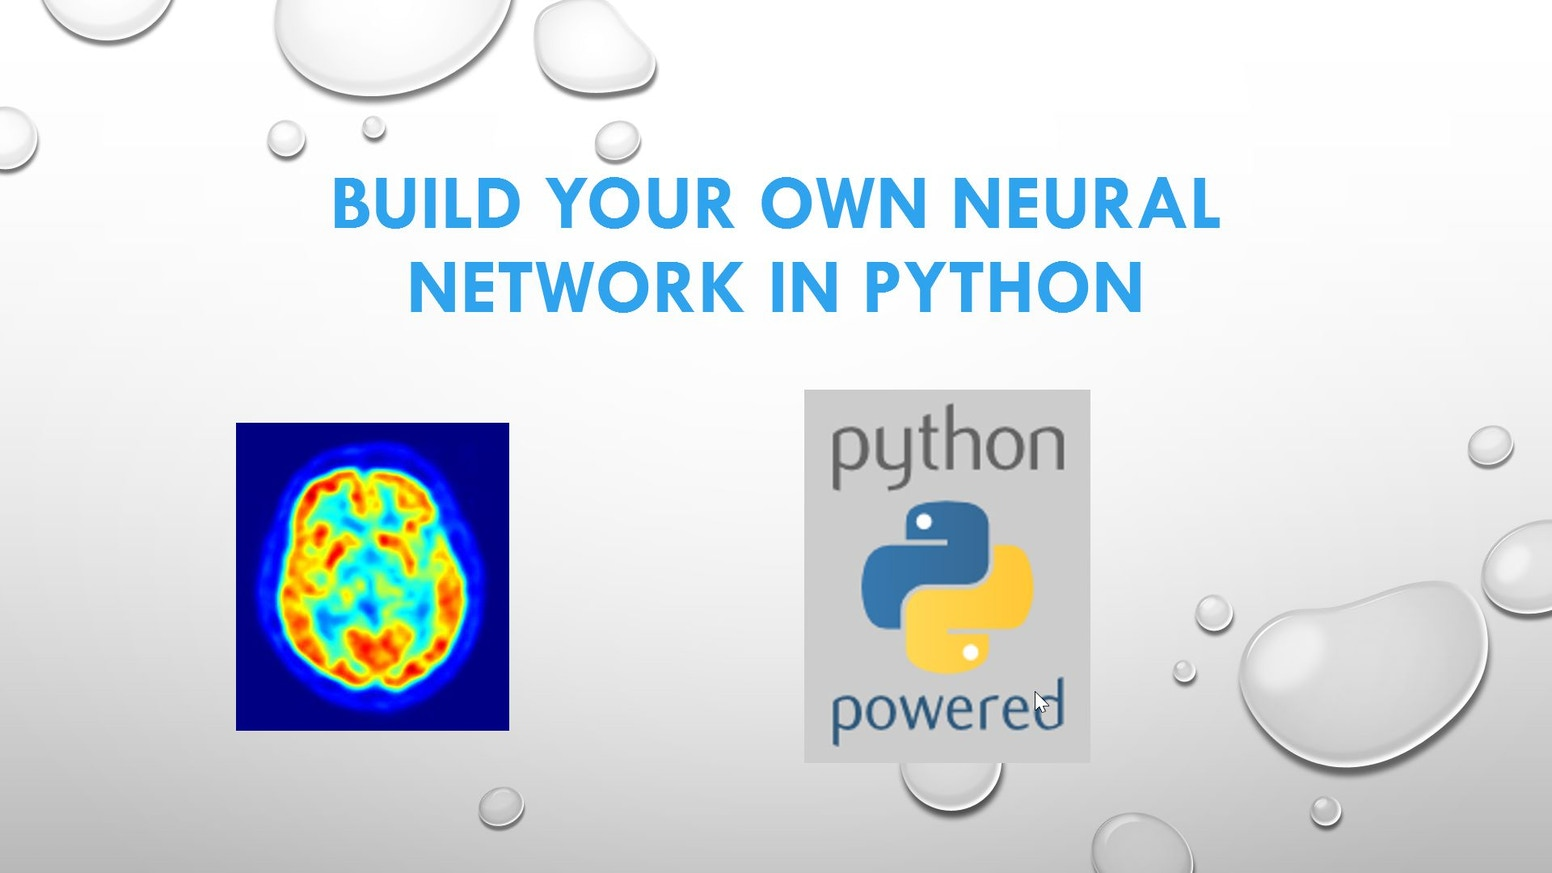 Build Your Own Neural Network in Python (Machine Learning) by